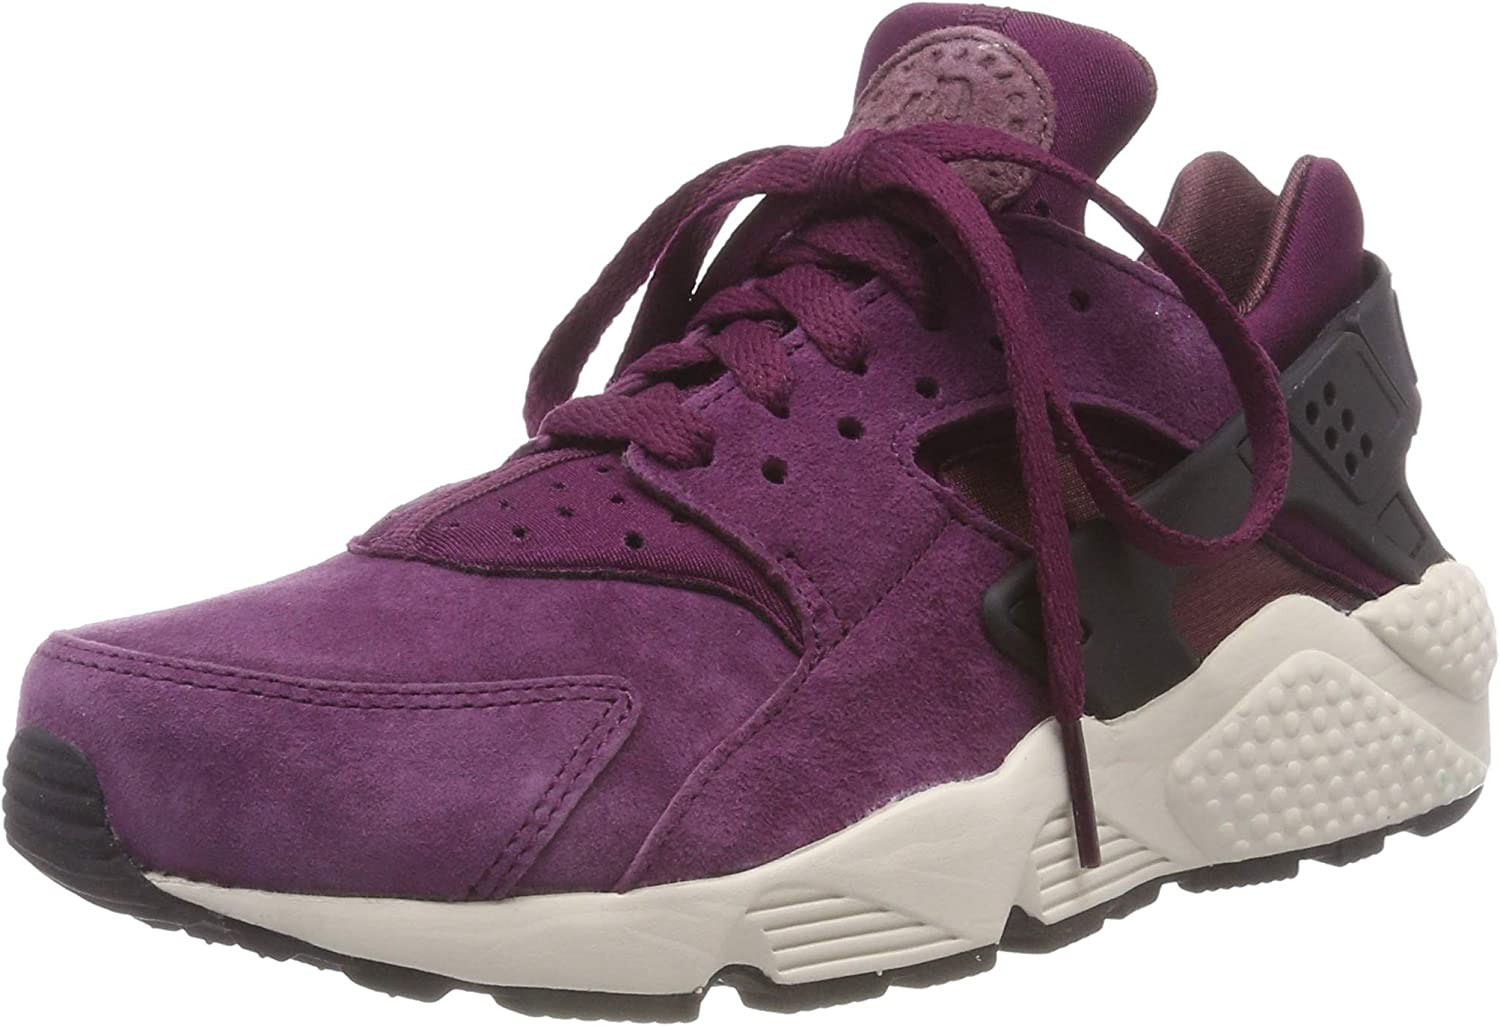 Nike Air Huarache Run PRM, Men s Gymnastics Shoes 9 M US, Bordeaux Black Lite Bone